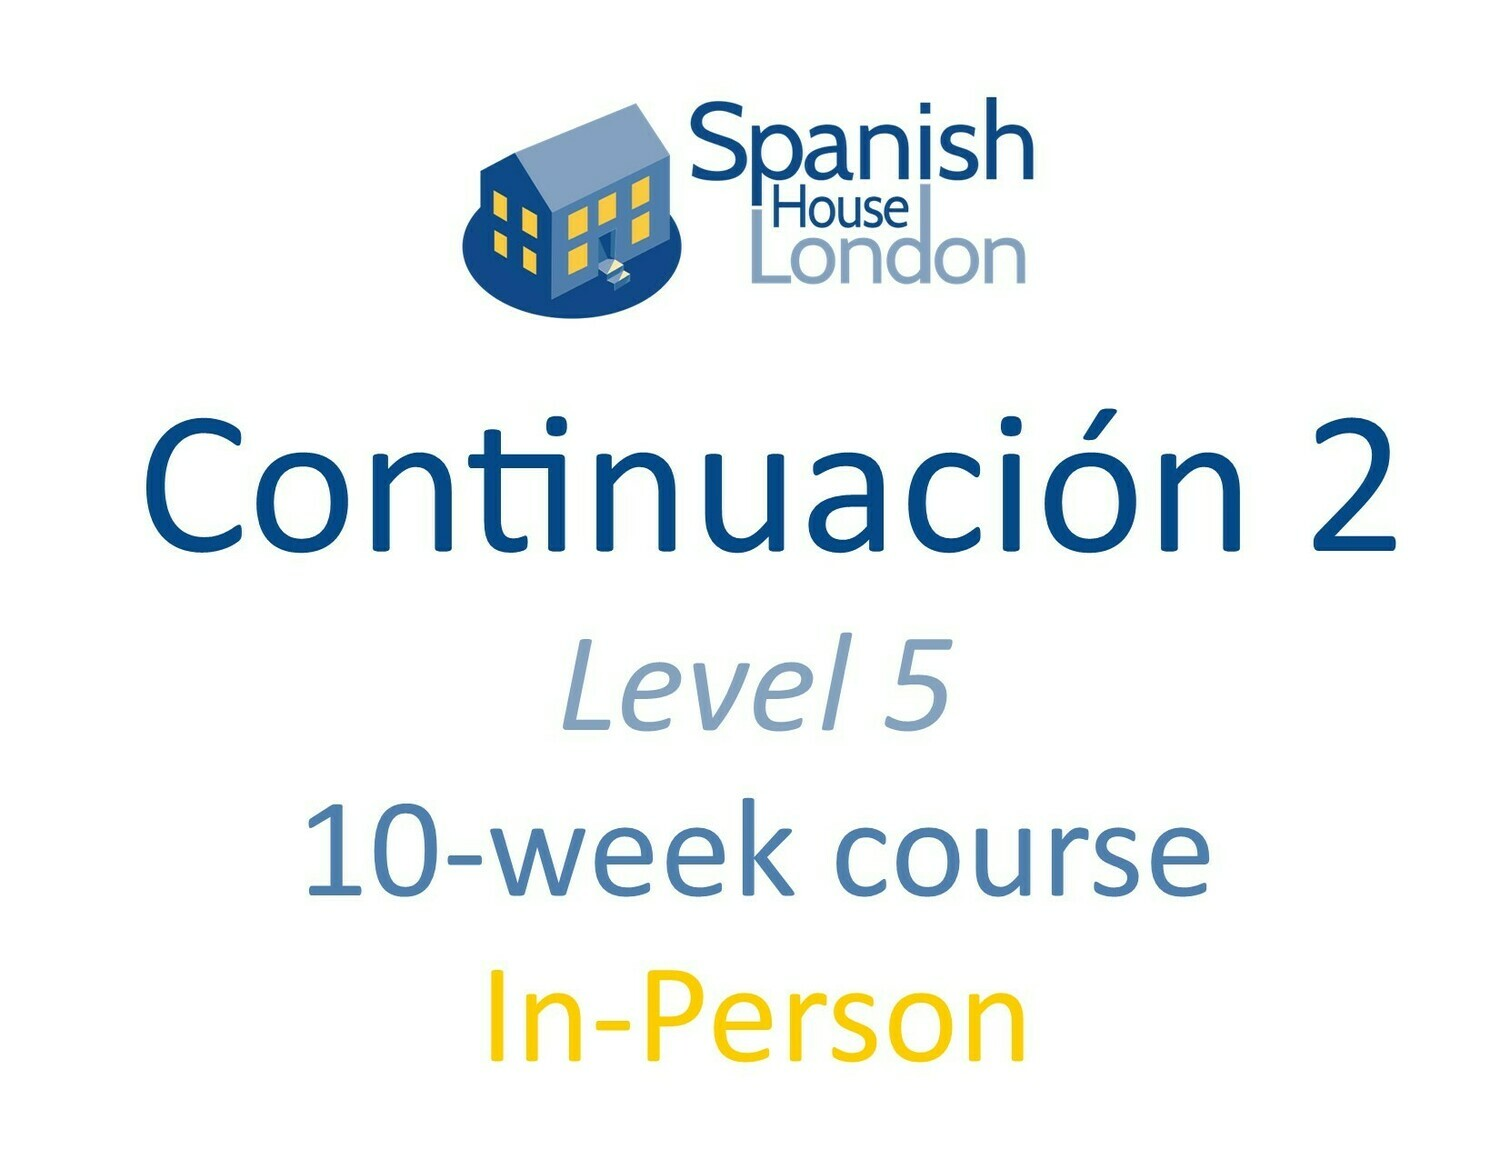 Continuacion 2 Course starting on 19th July at 7.30pm in Clapham North